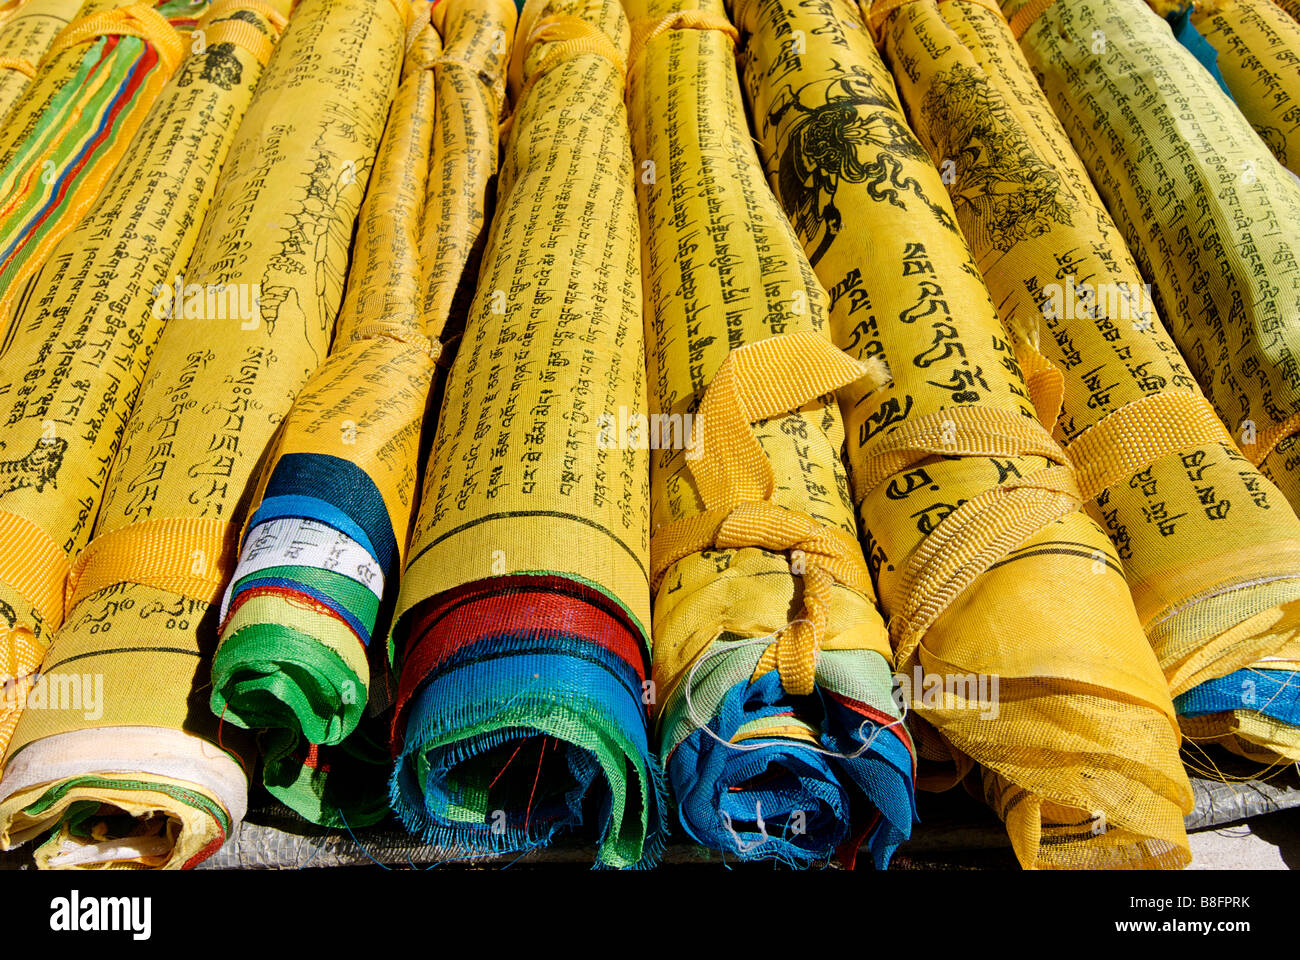 Rolled up prayer flags. Tibet - Stock Image